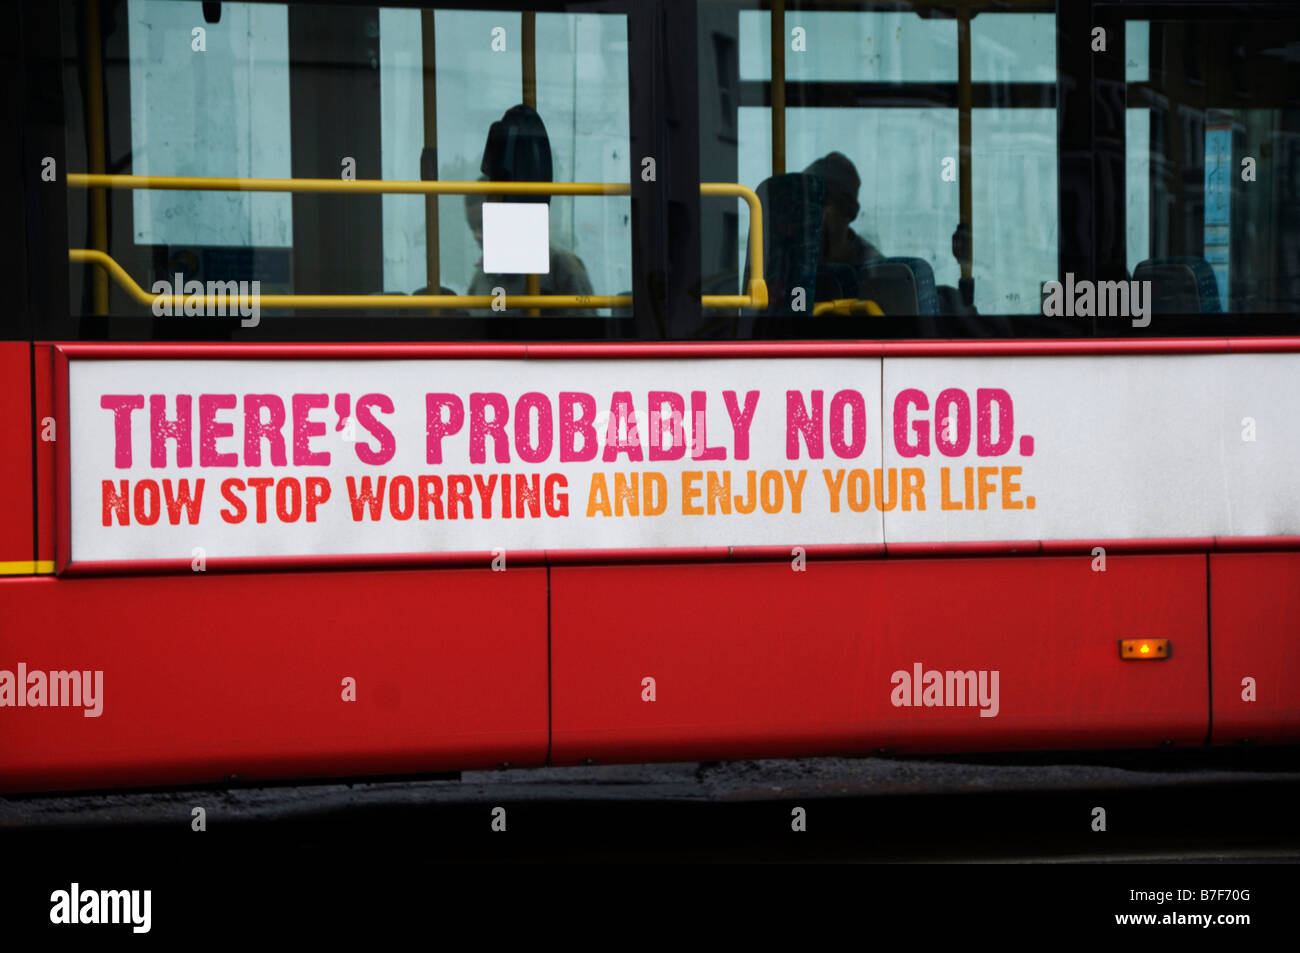 Hackney London Atheist advert on London bus saying There's probably no God - Stock Image